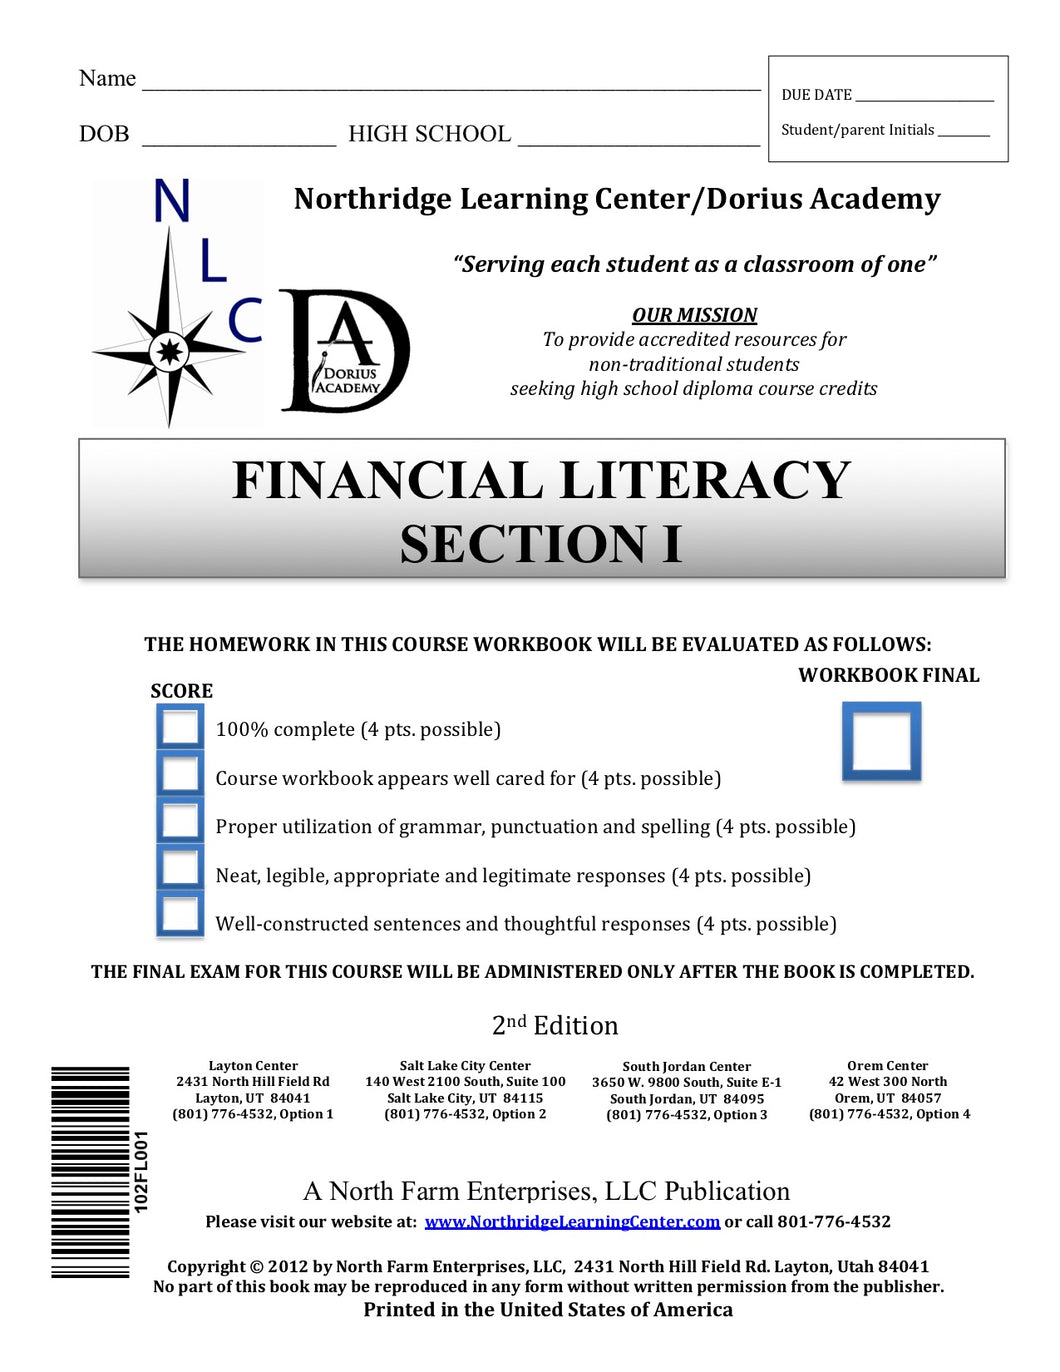 Financial Literacy, Section I